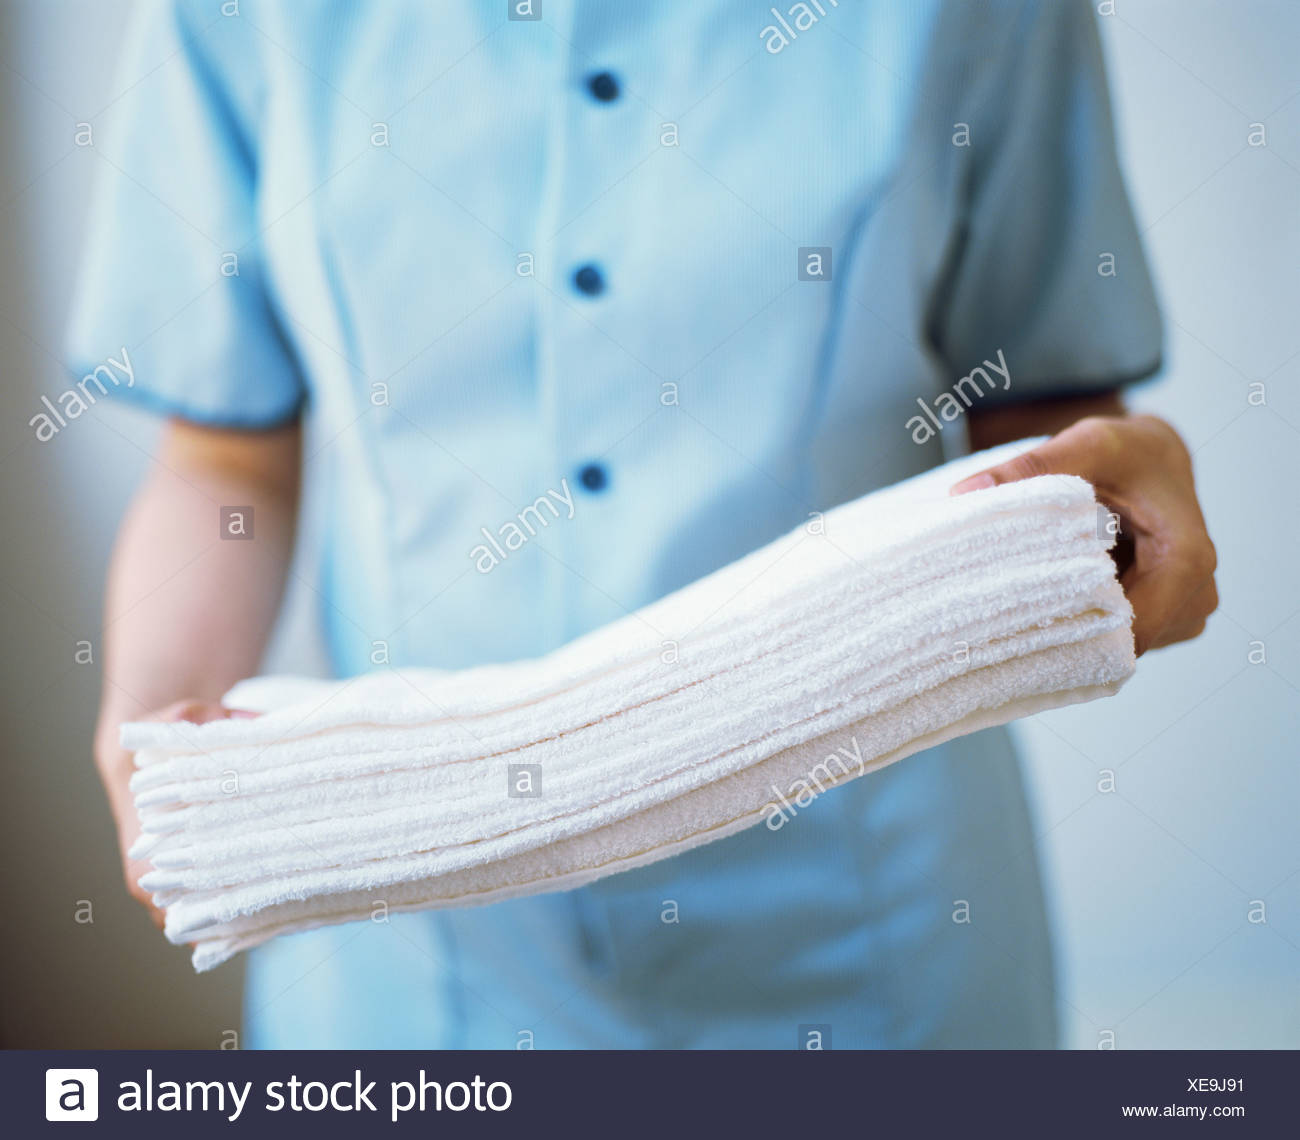 Maid carrying towels - Stock Image